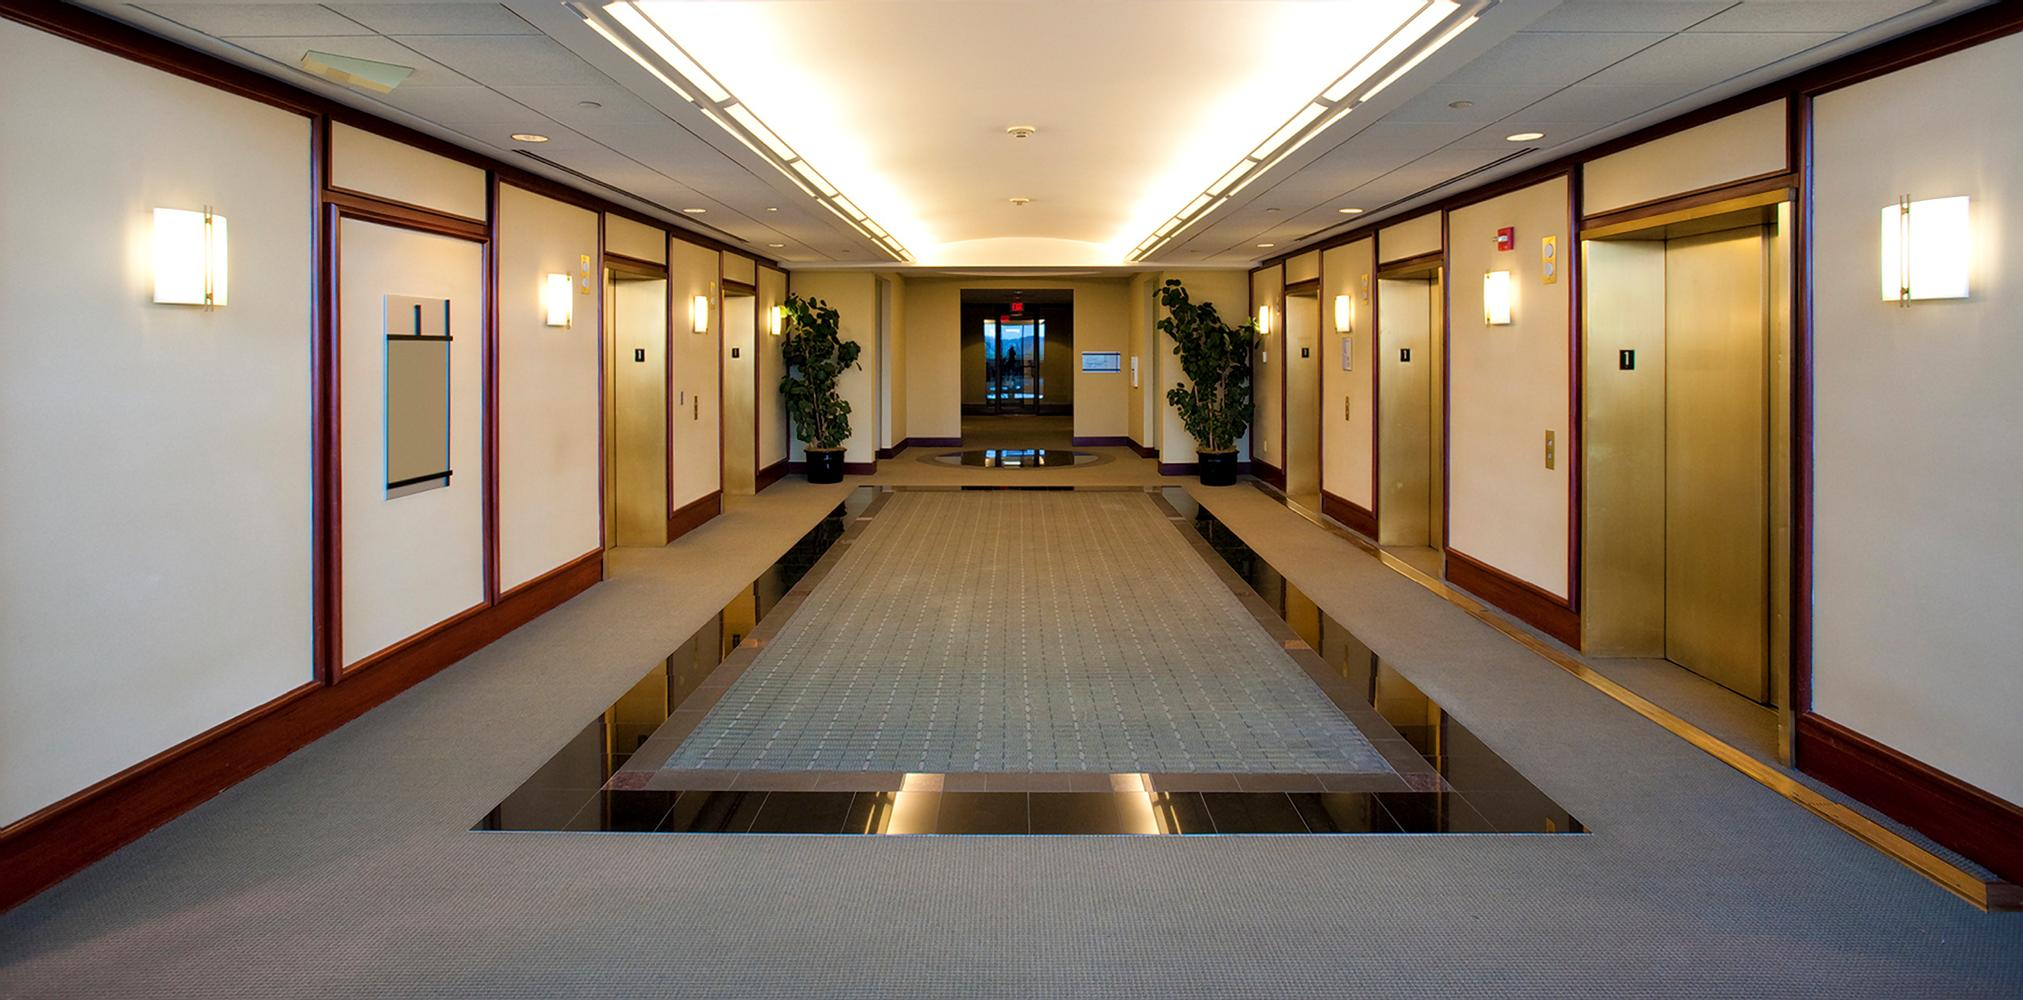 Commercial-carpet-cleaning-elevator-lobby-in-hotel2